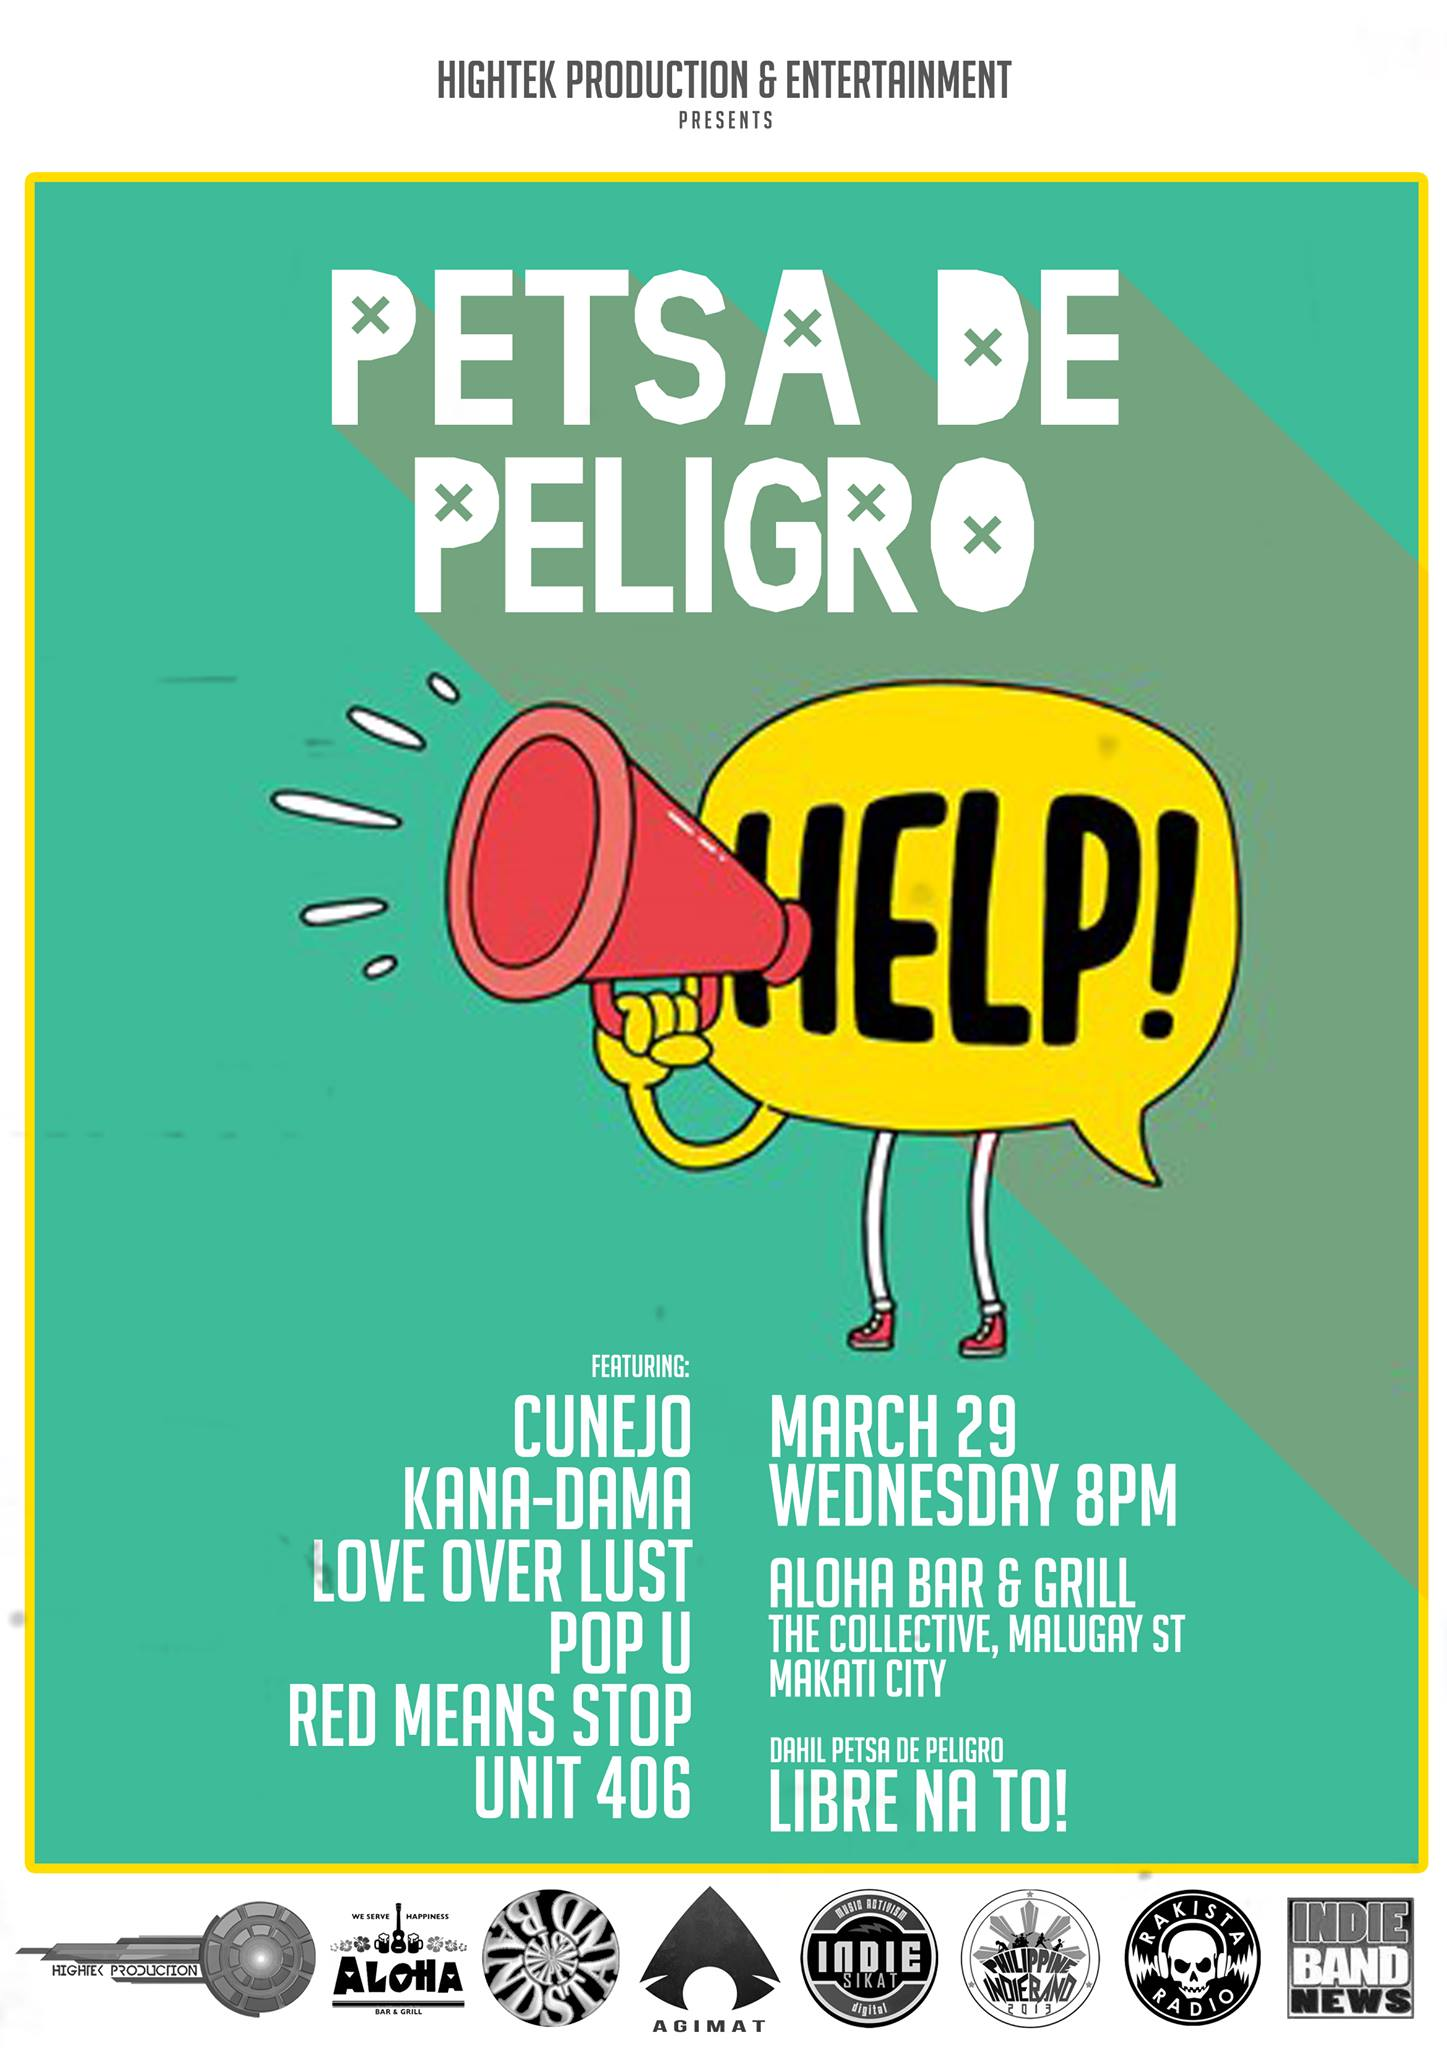 "Pol Calinawan published Petsa De Peligro on WordPress. 17 hrs · ""PETSA DE PELIGRO"" Featuring: – Cunejo – Kana-Dama – Love Over Lust – Pop U – Red Mean Stop – Unit 406 March 29, 2017 (Wednesday) 8pm-12:30am at Aloha Bar and Grill The Collective Malugay St. Makati City FREE ENTRANCE! Brought to us by: Hightek Production and Entertainment Special thanks to: Aloha Bar & Grill Media Partners: Indie Band News, Bandstand.ph, Agimat: Sining at Kulturang Pinoy, Philippine INDIE BAND, Indie-SIKAT, Rakista Radio For inquiries/ table reservations: 09279879730 ★ Petsa De Peligro ★ https://www.facebook.com/events/1293031667443004/ ★ http://bandstand.ph/2017/03/26/petsa-de-peligro/ :D Zyx Gisap @ Bandstand Philippines, Bandscapes, atbp. :)"